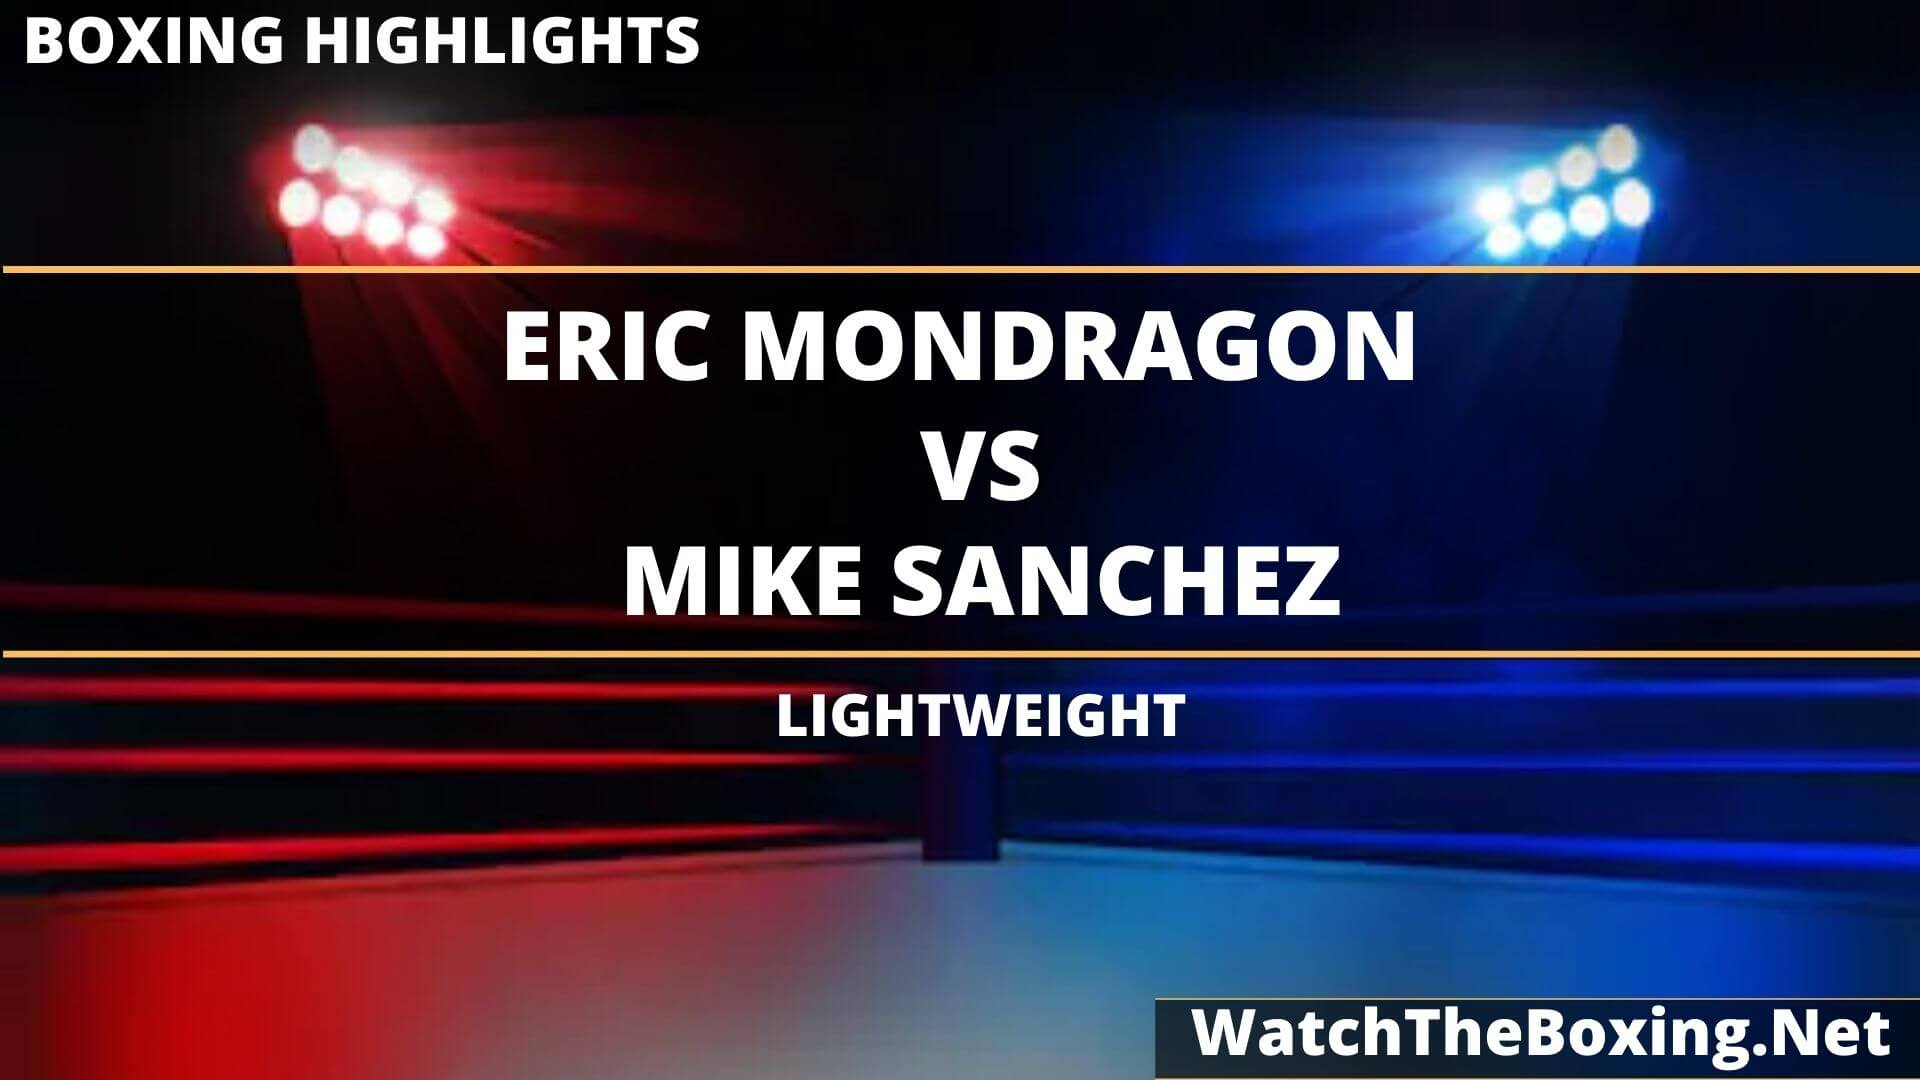 Eric Mondragon Vs Mike Sanchez Highlights 2020 Lightweight